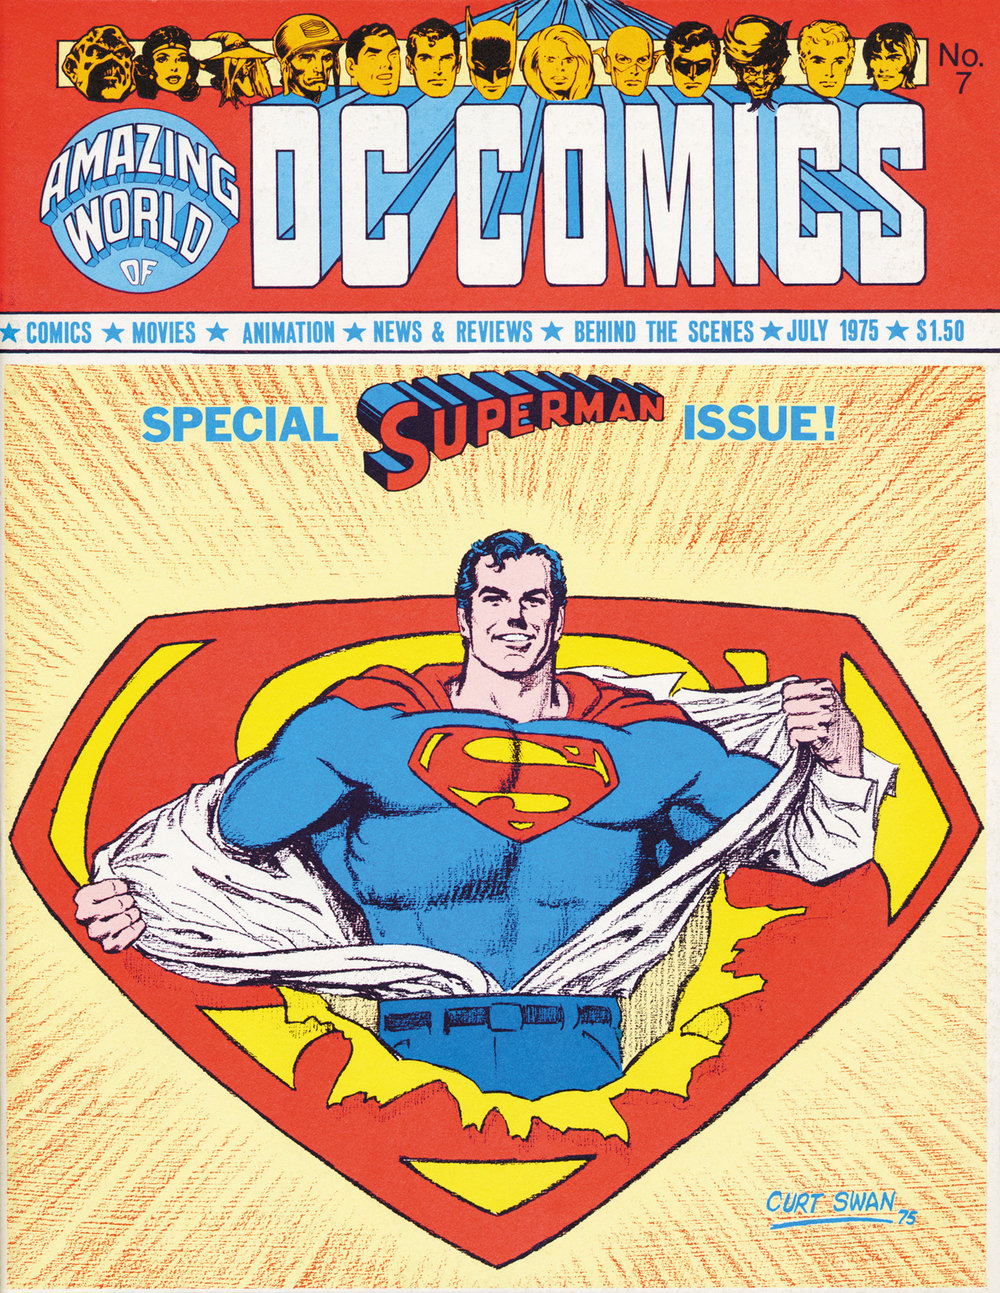 Amazing World of DC Comics (1974) #7, cover by Curt Swan.